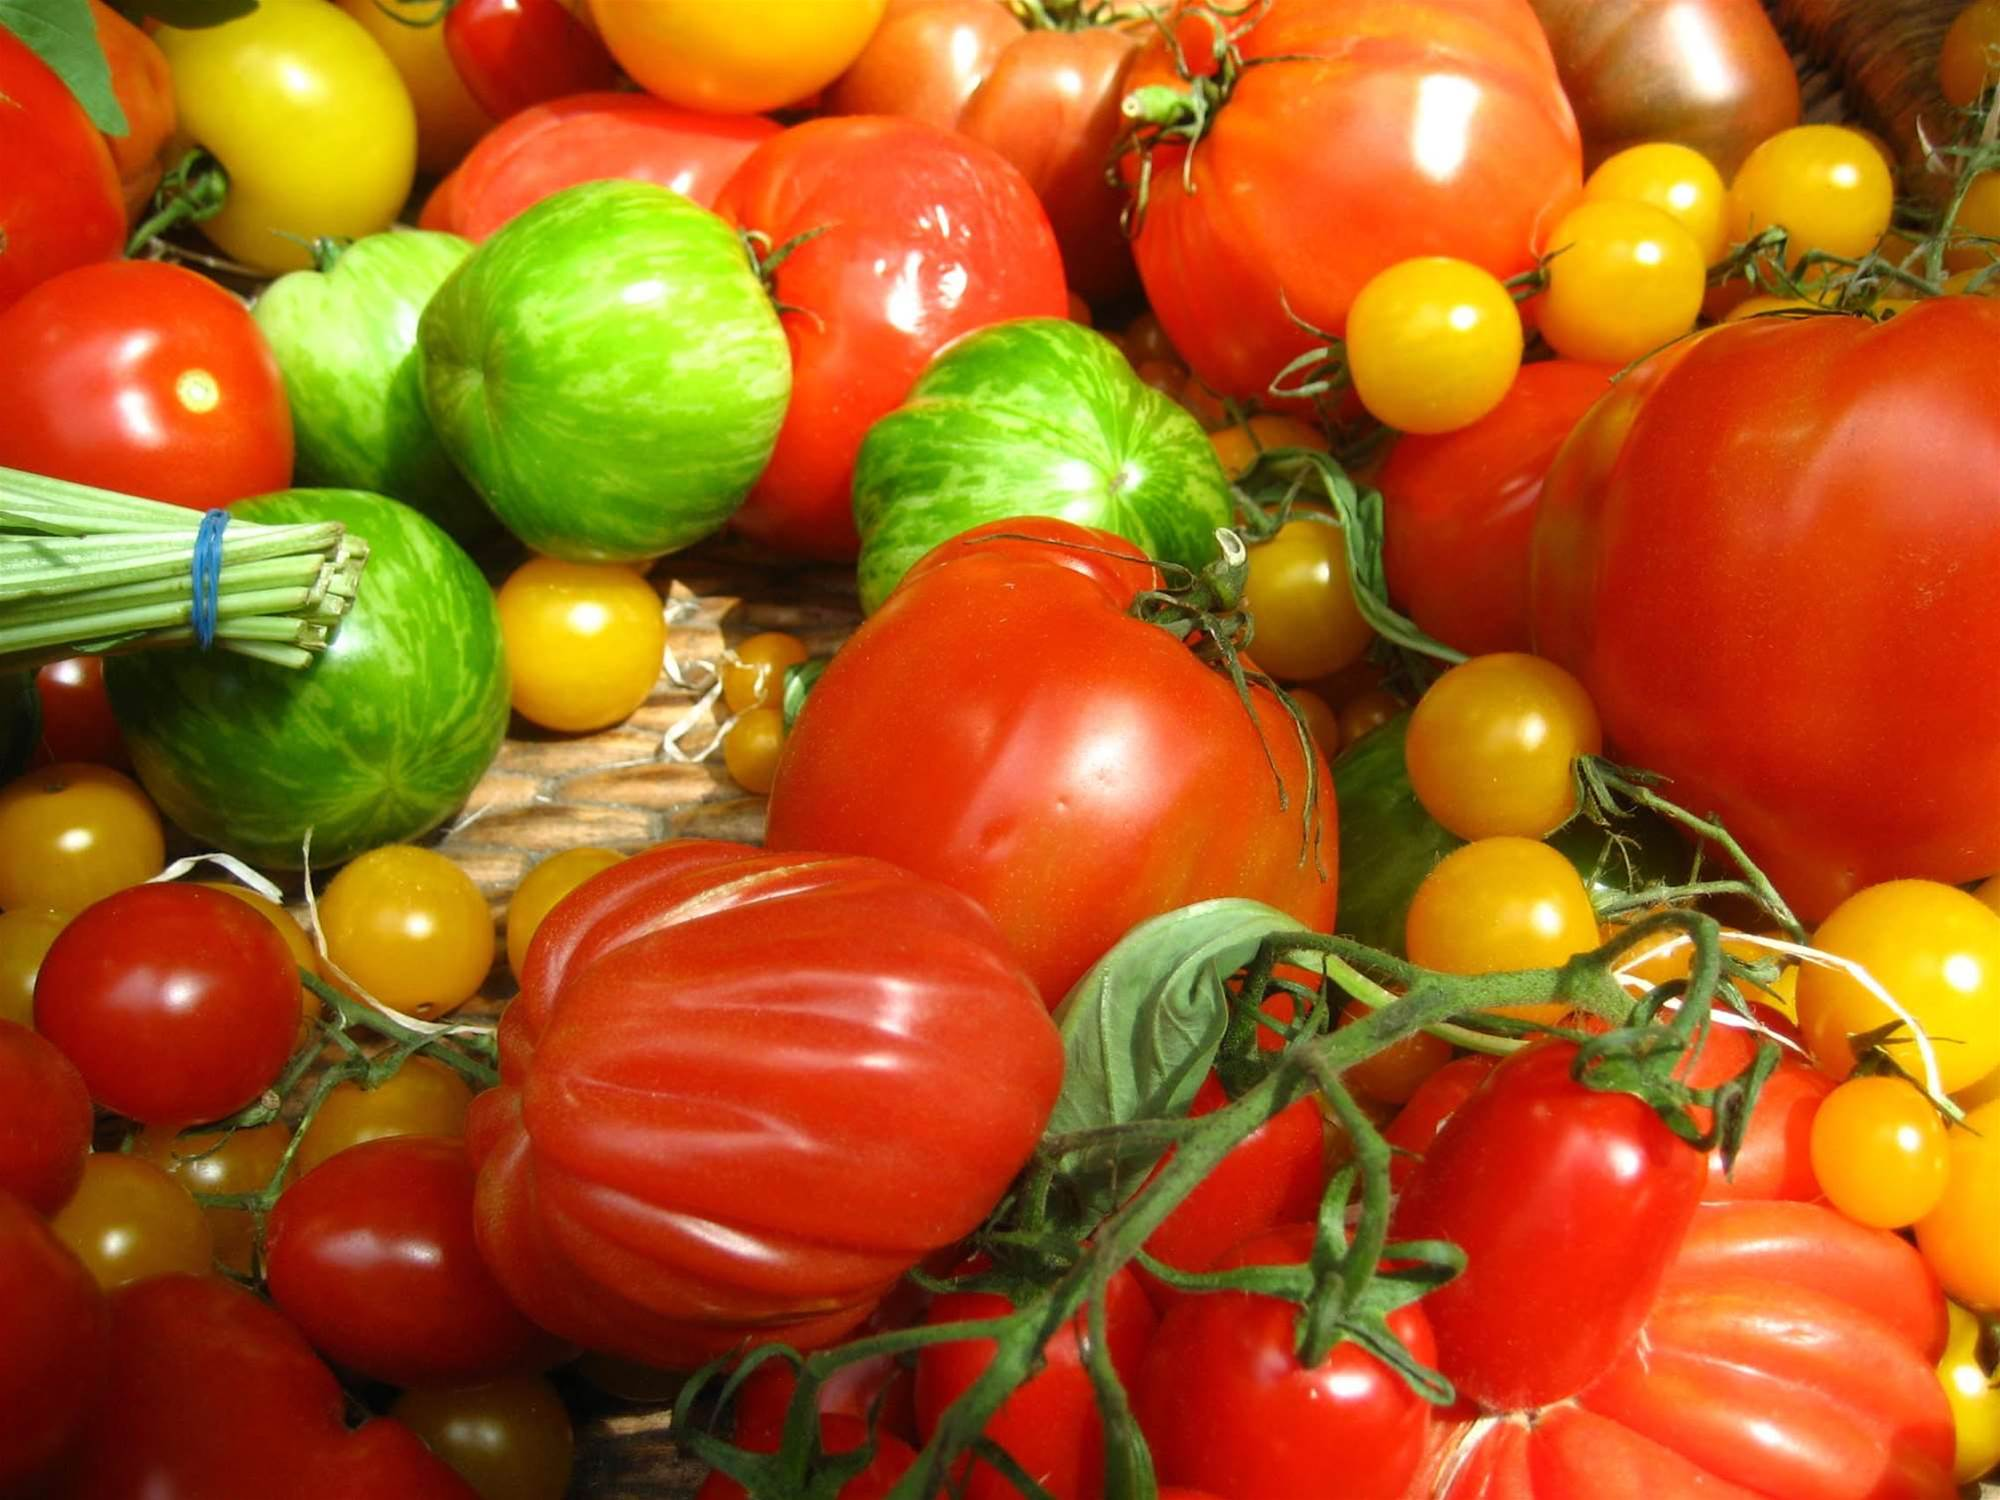 Damaged Tomatoes Could Provide Electricity